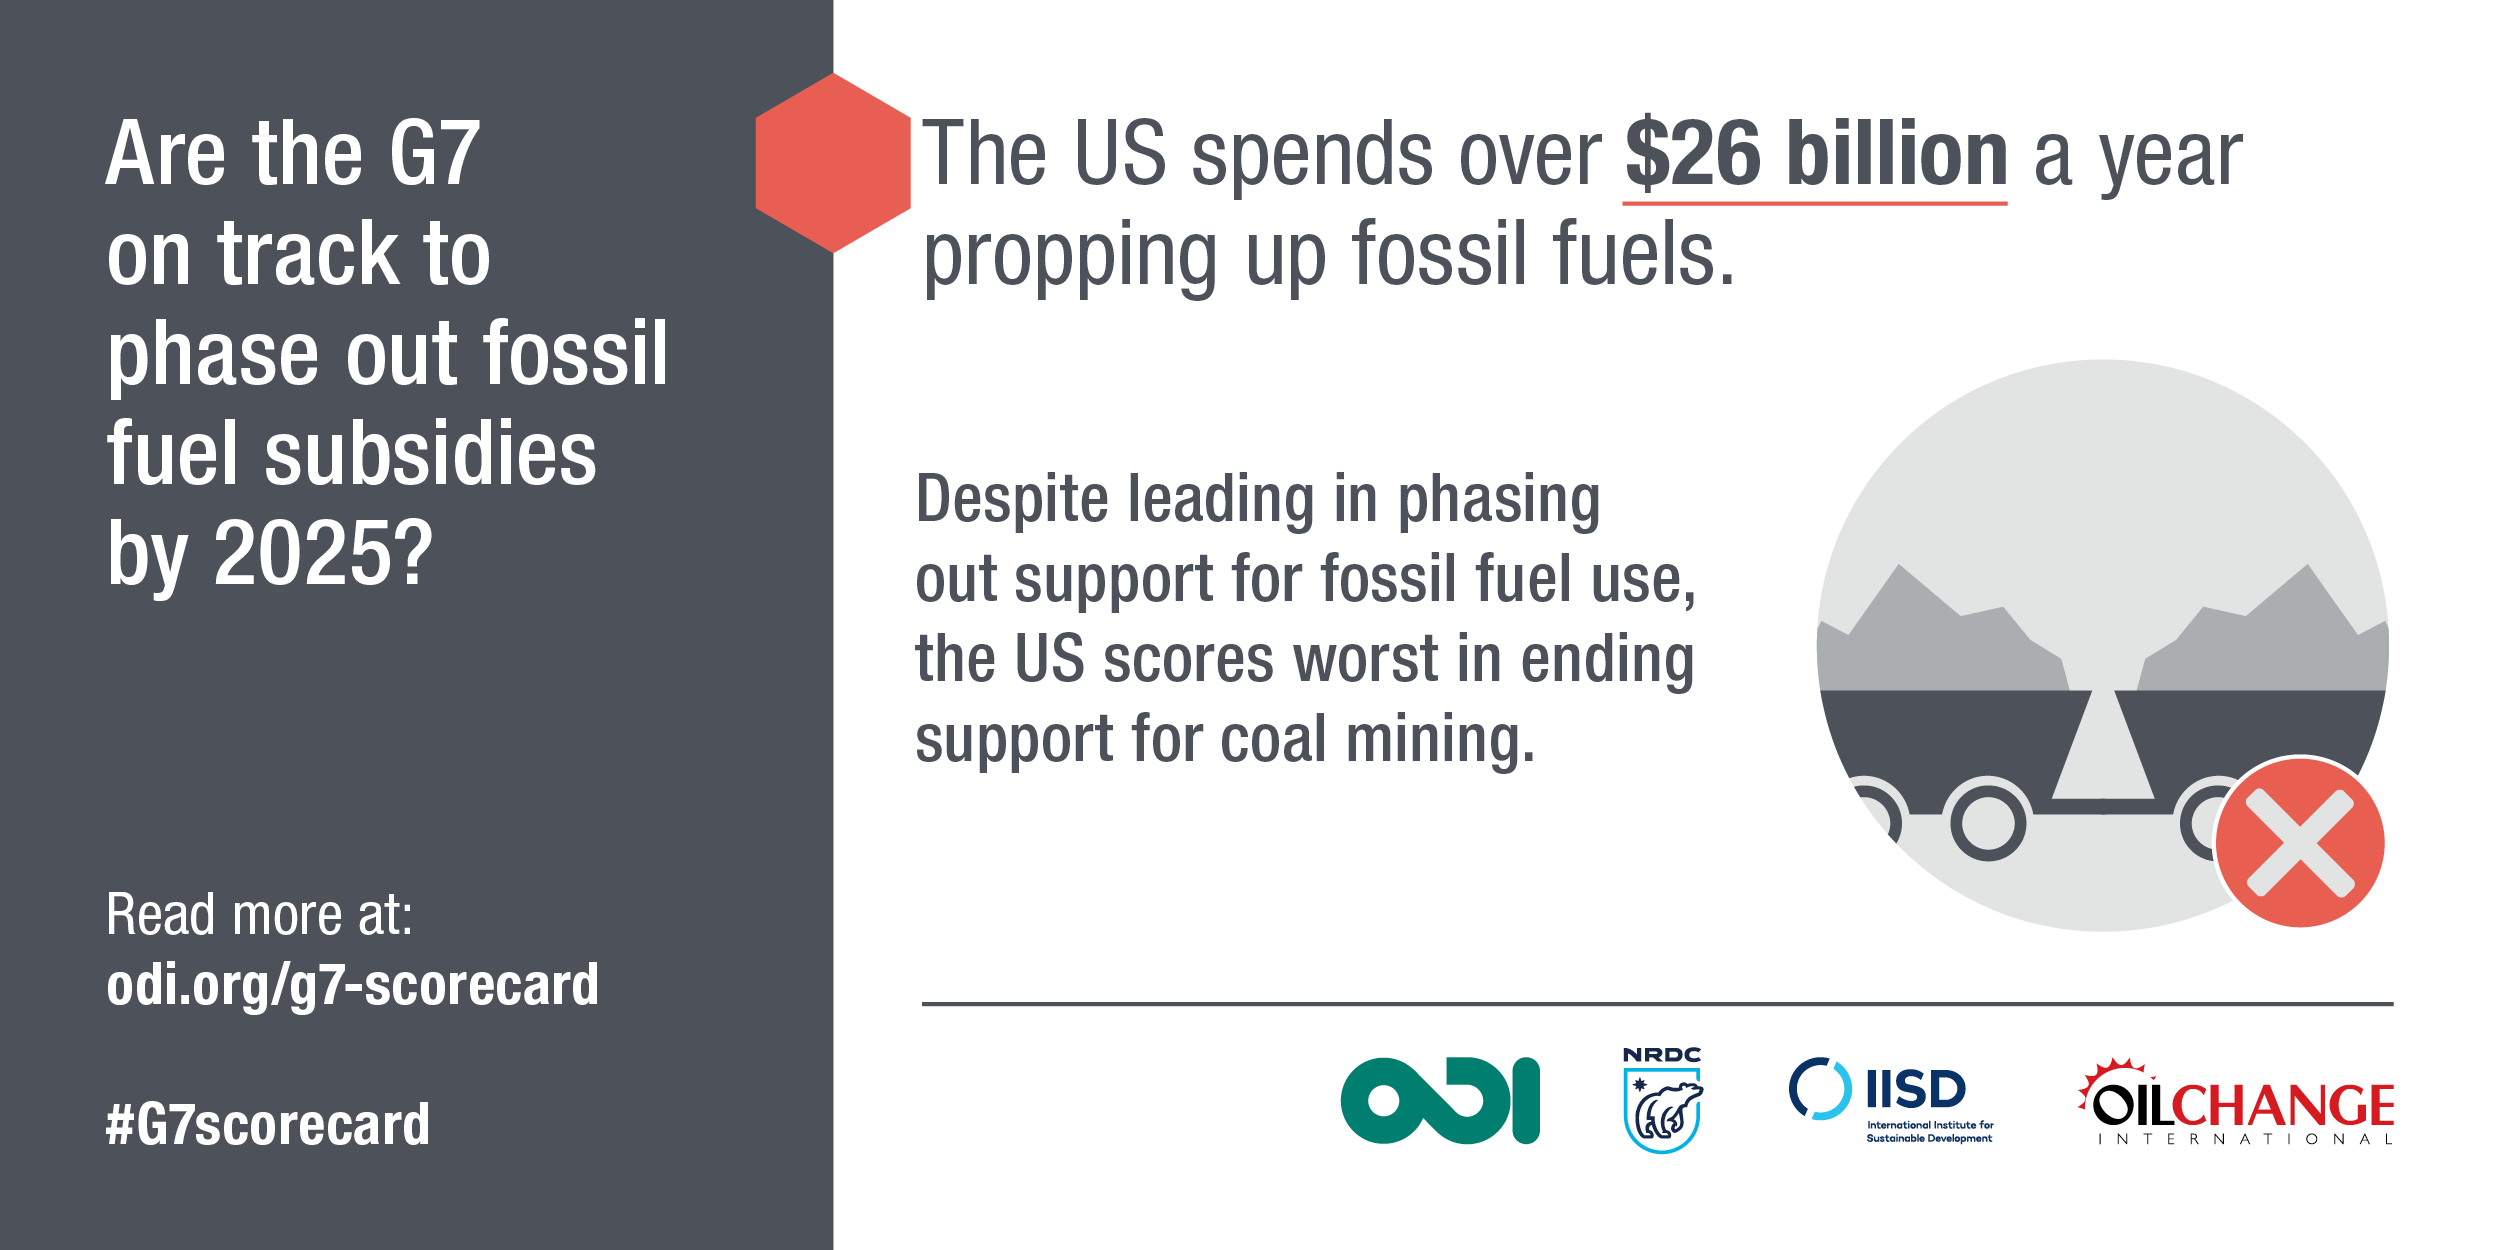 The US spends over $26 billion a year propping up fossil fuels. Image: ODI